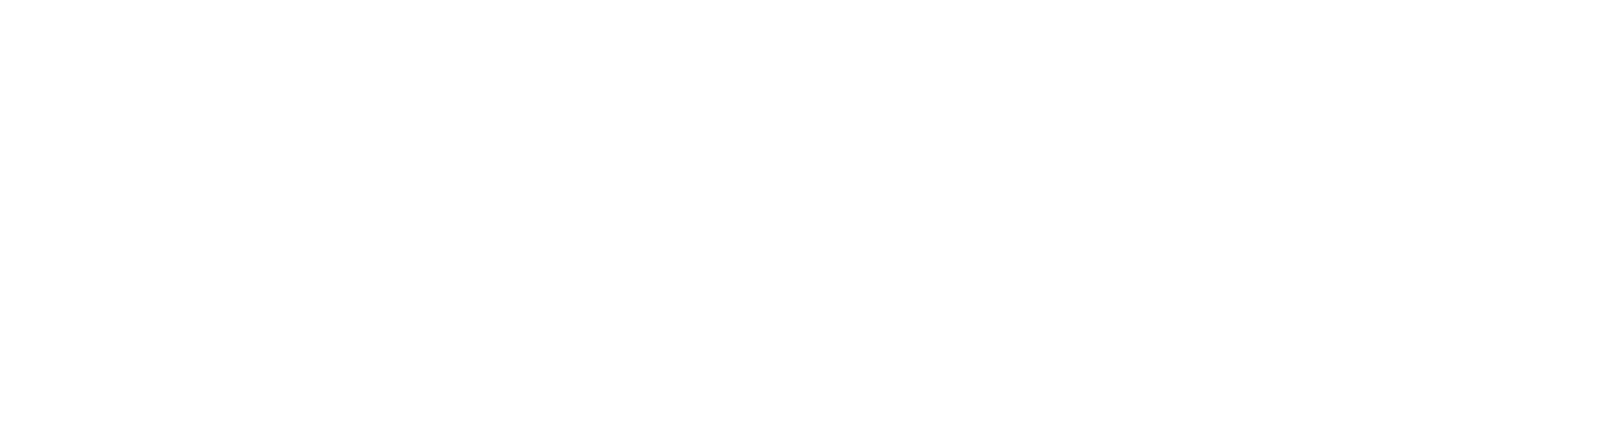 Typical Gamer logo